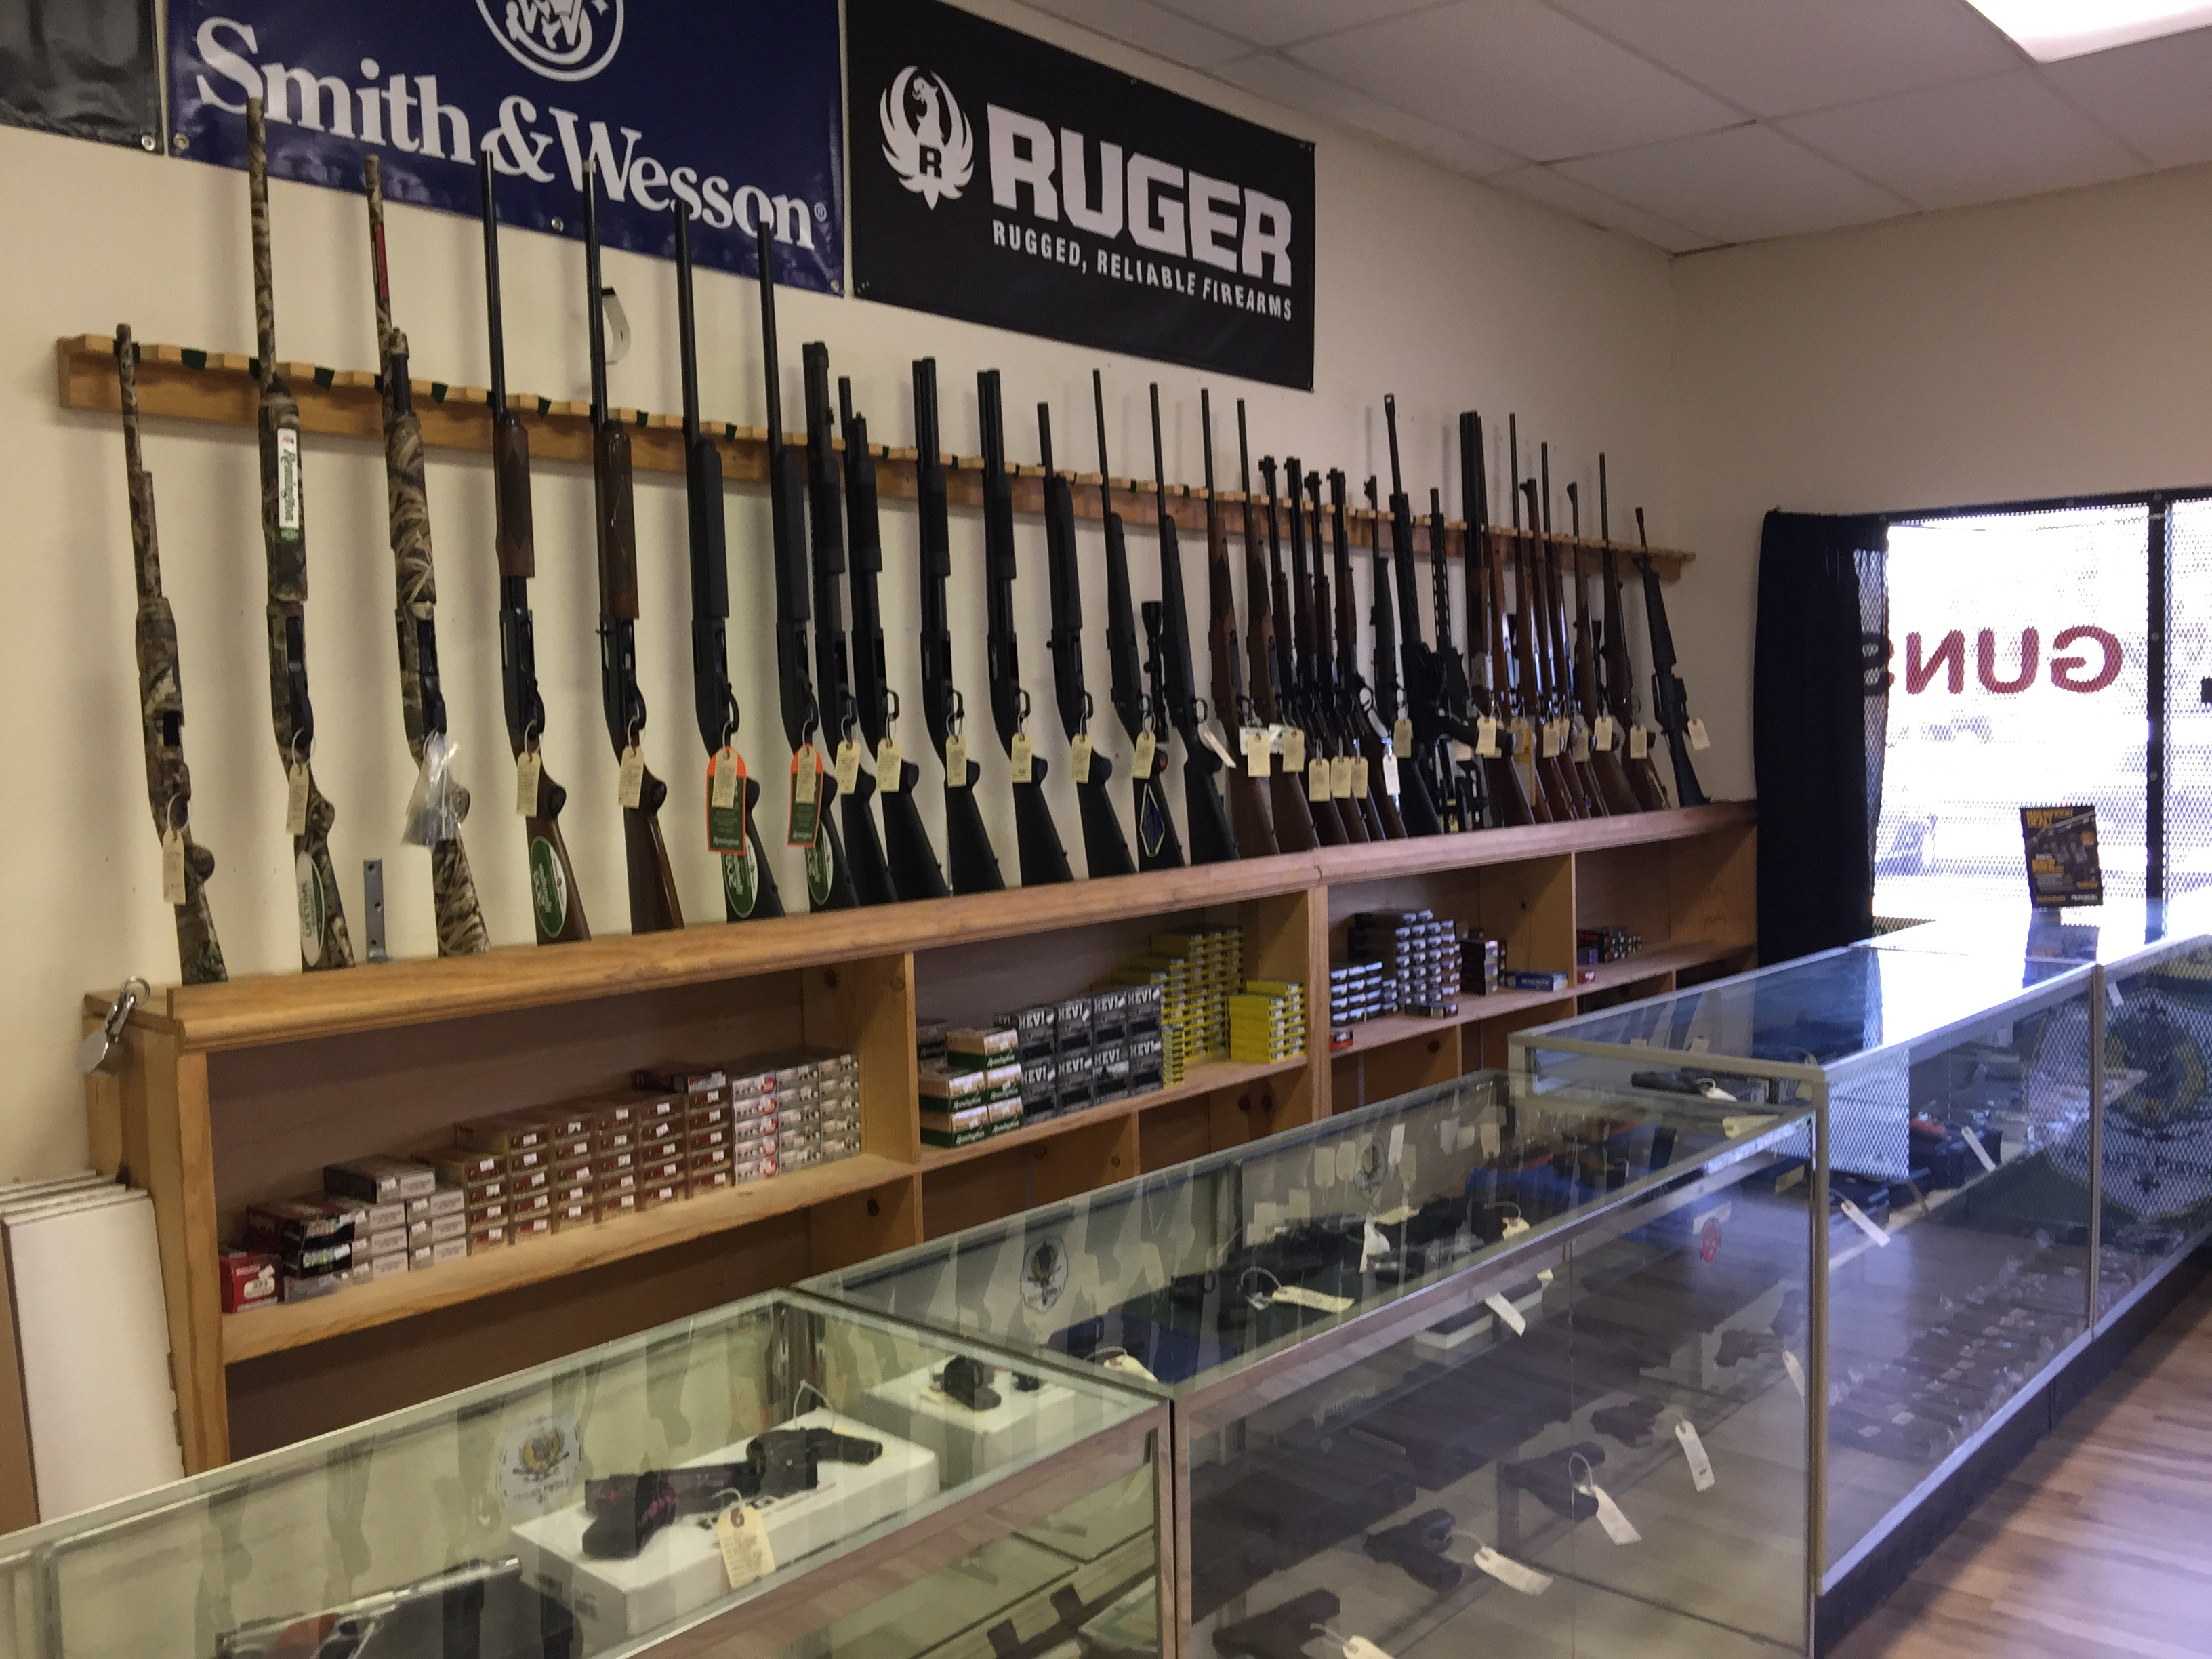 PAULIES PISTOLS | Firearms and Gear for sale | Slidell